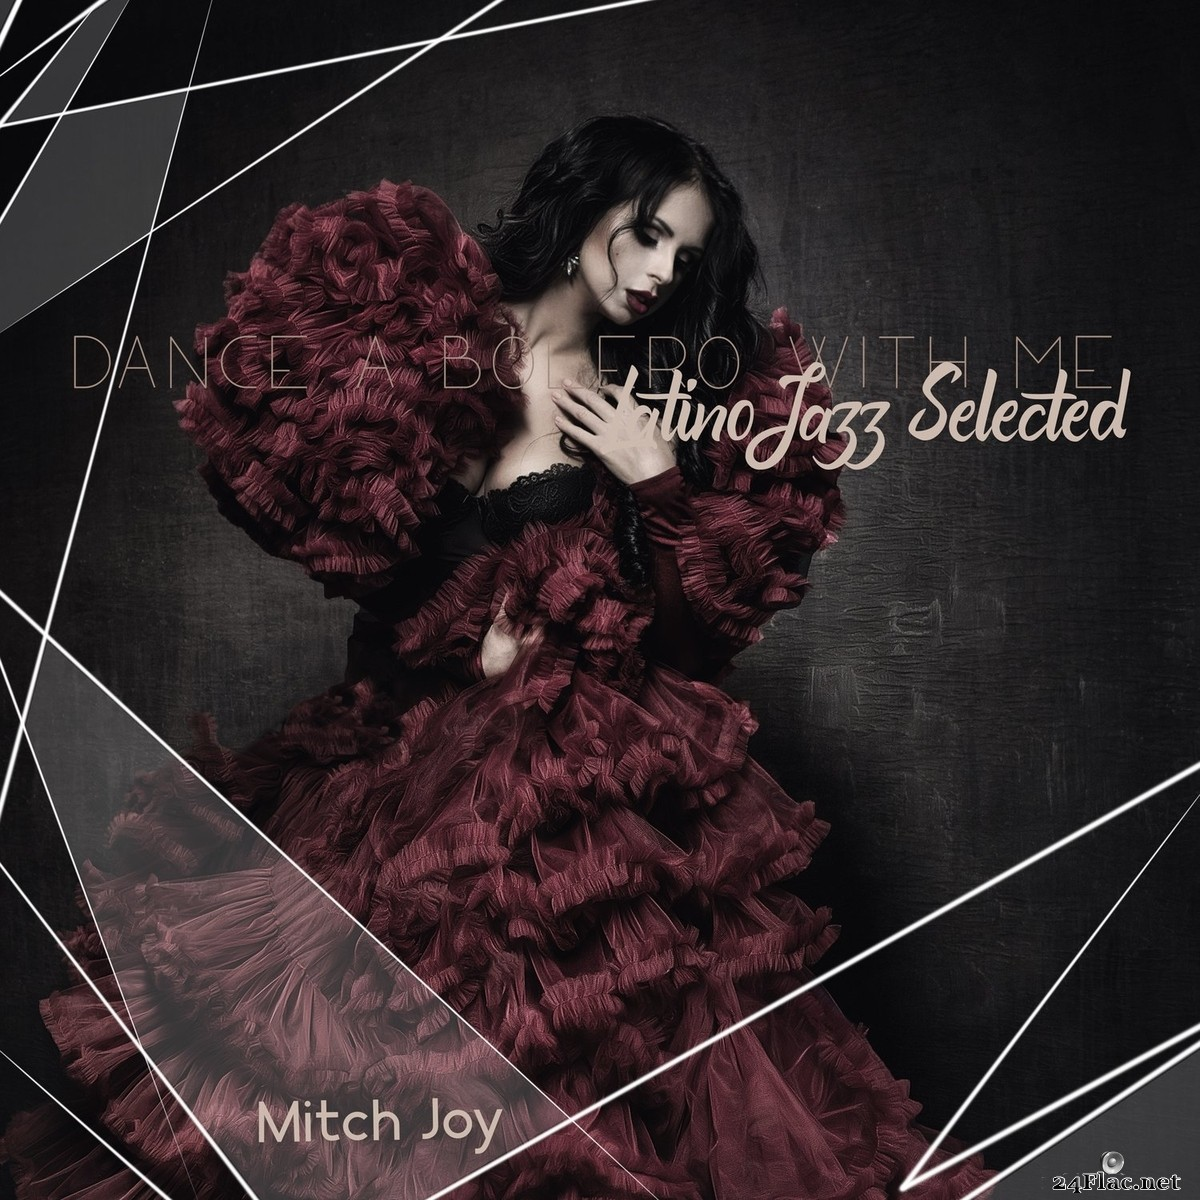 Mitch Joy - Dance a Bolero with Me: Latino Jazz Selected (2021) FLAC